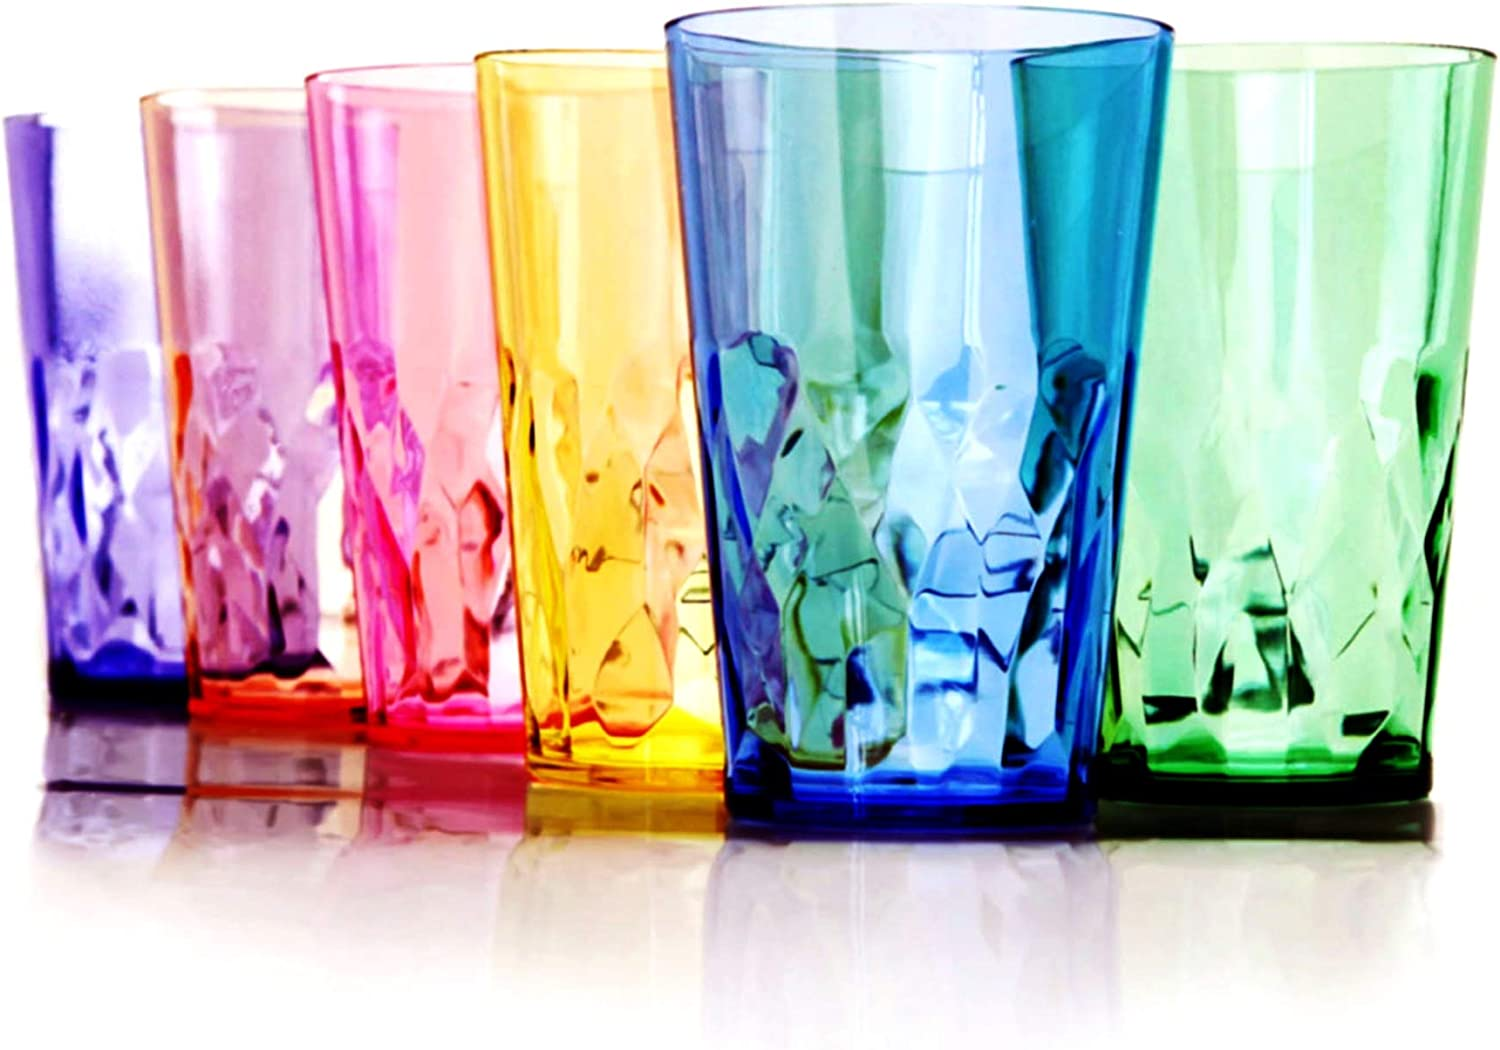 SCANDINOVIA - 19 oz Unbreakable Premium Drinking Glasses Tumbler - Set of 6 - Tritan Plastic Cups - BPA Free - Made in Japan